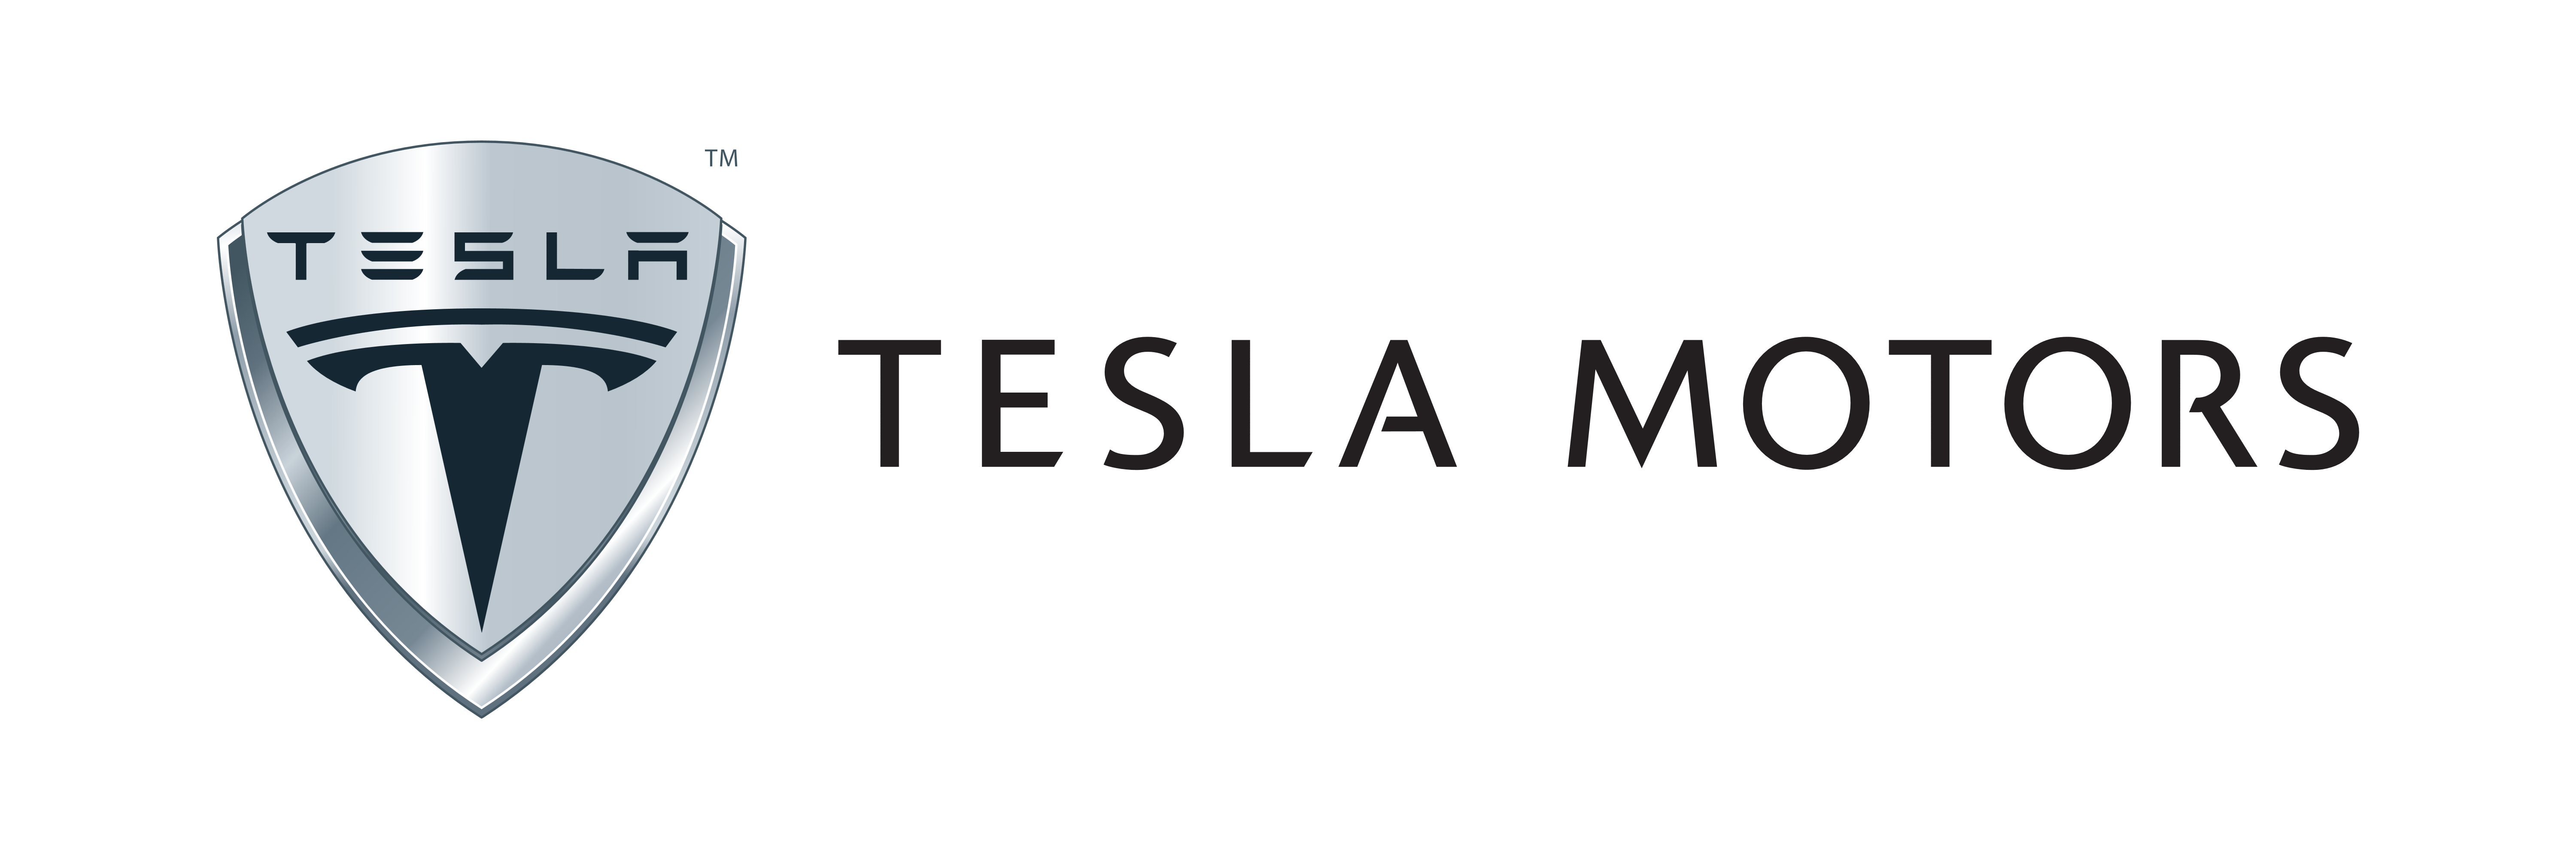 tesla logo png wwwpixsharkcom images galleries with